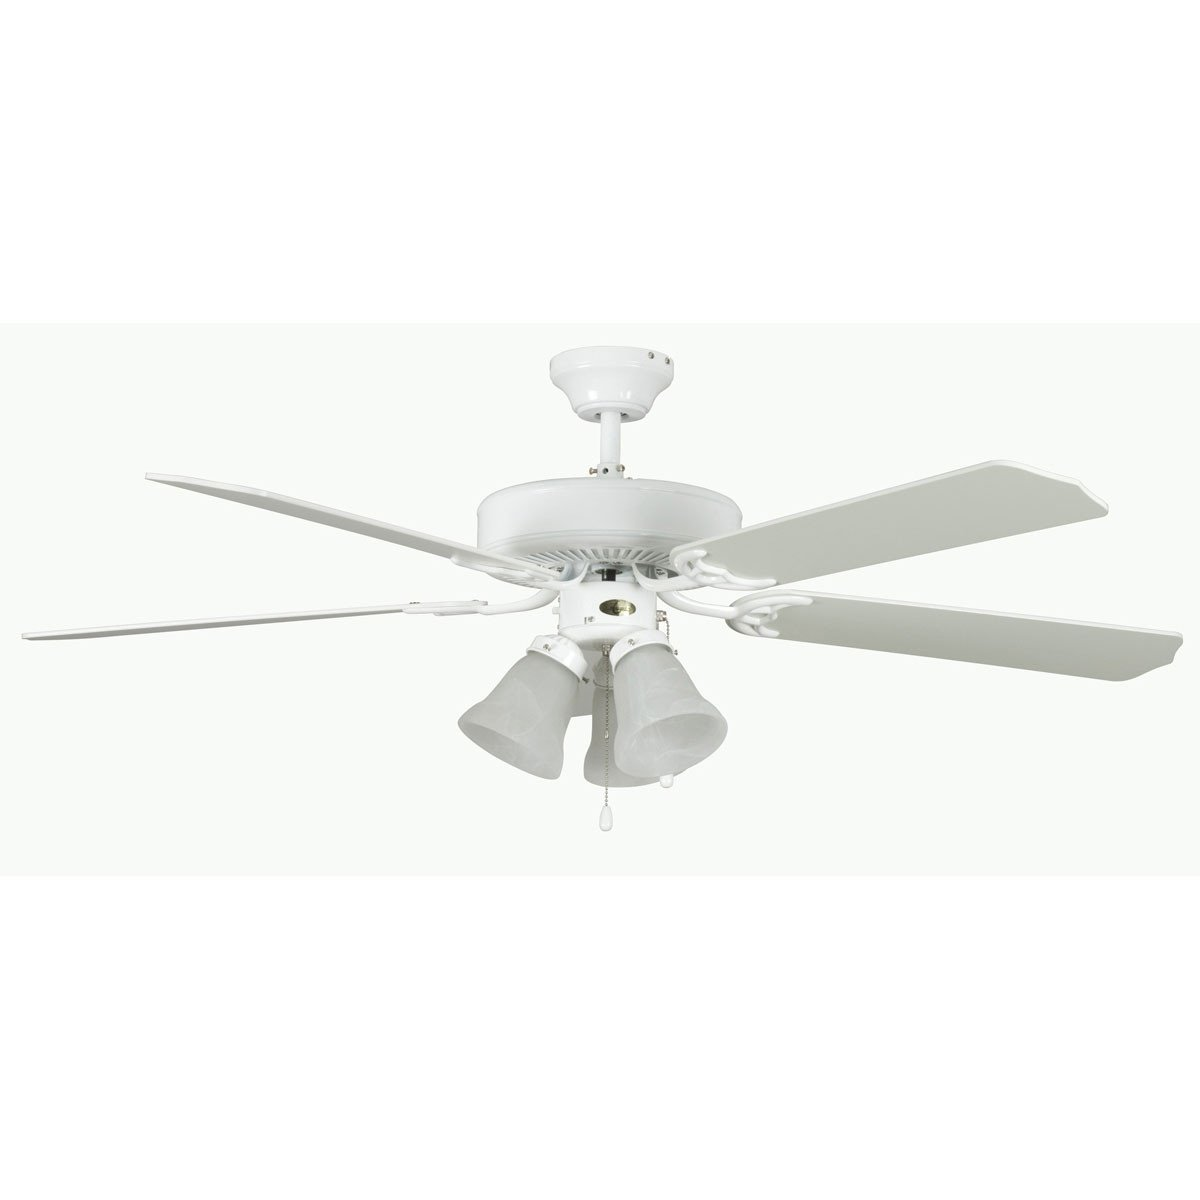 "Concord Fans 52"" Heritage Home Elegant White Ceiling Fan with 3 Lights"